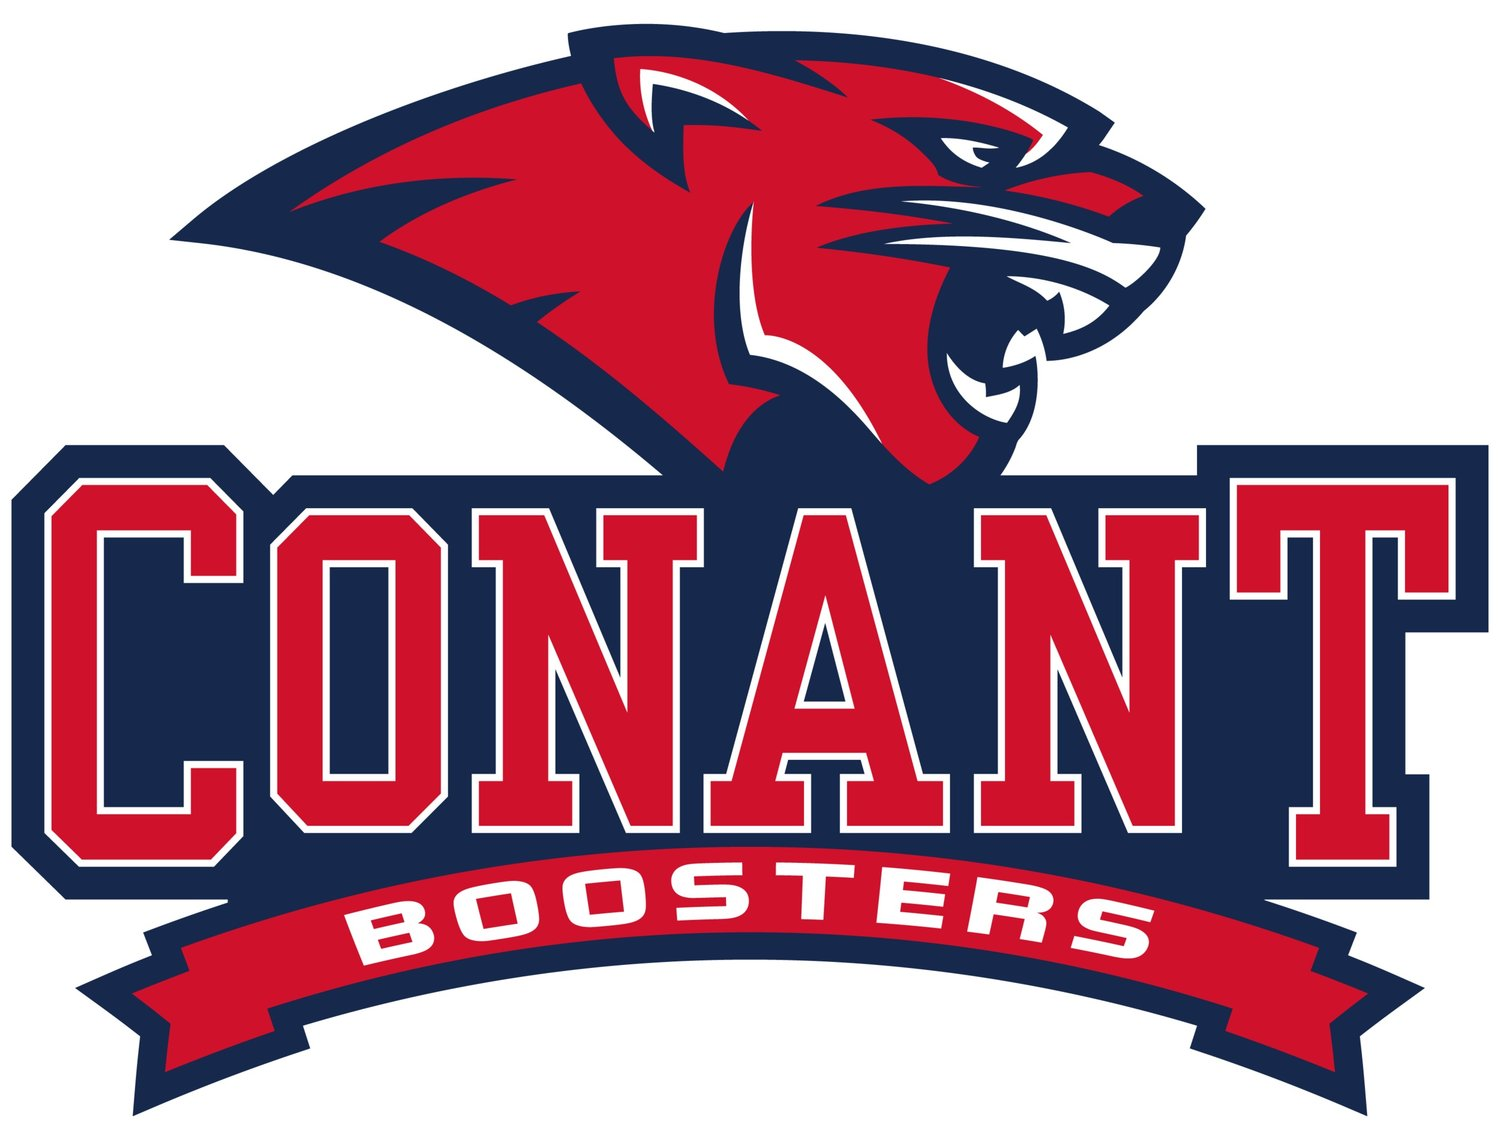 Conant High School Boosters